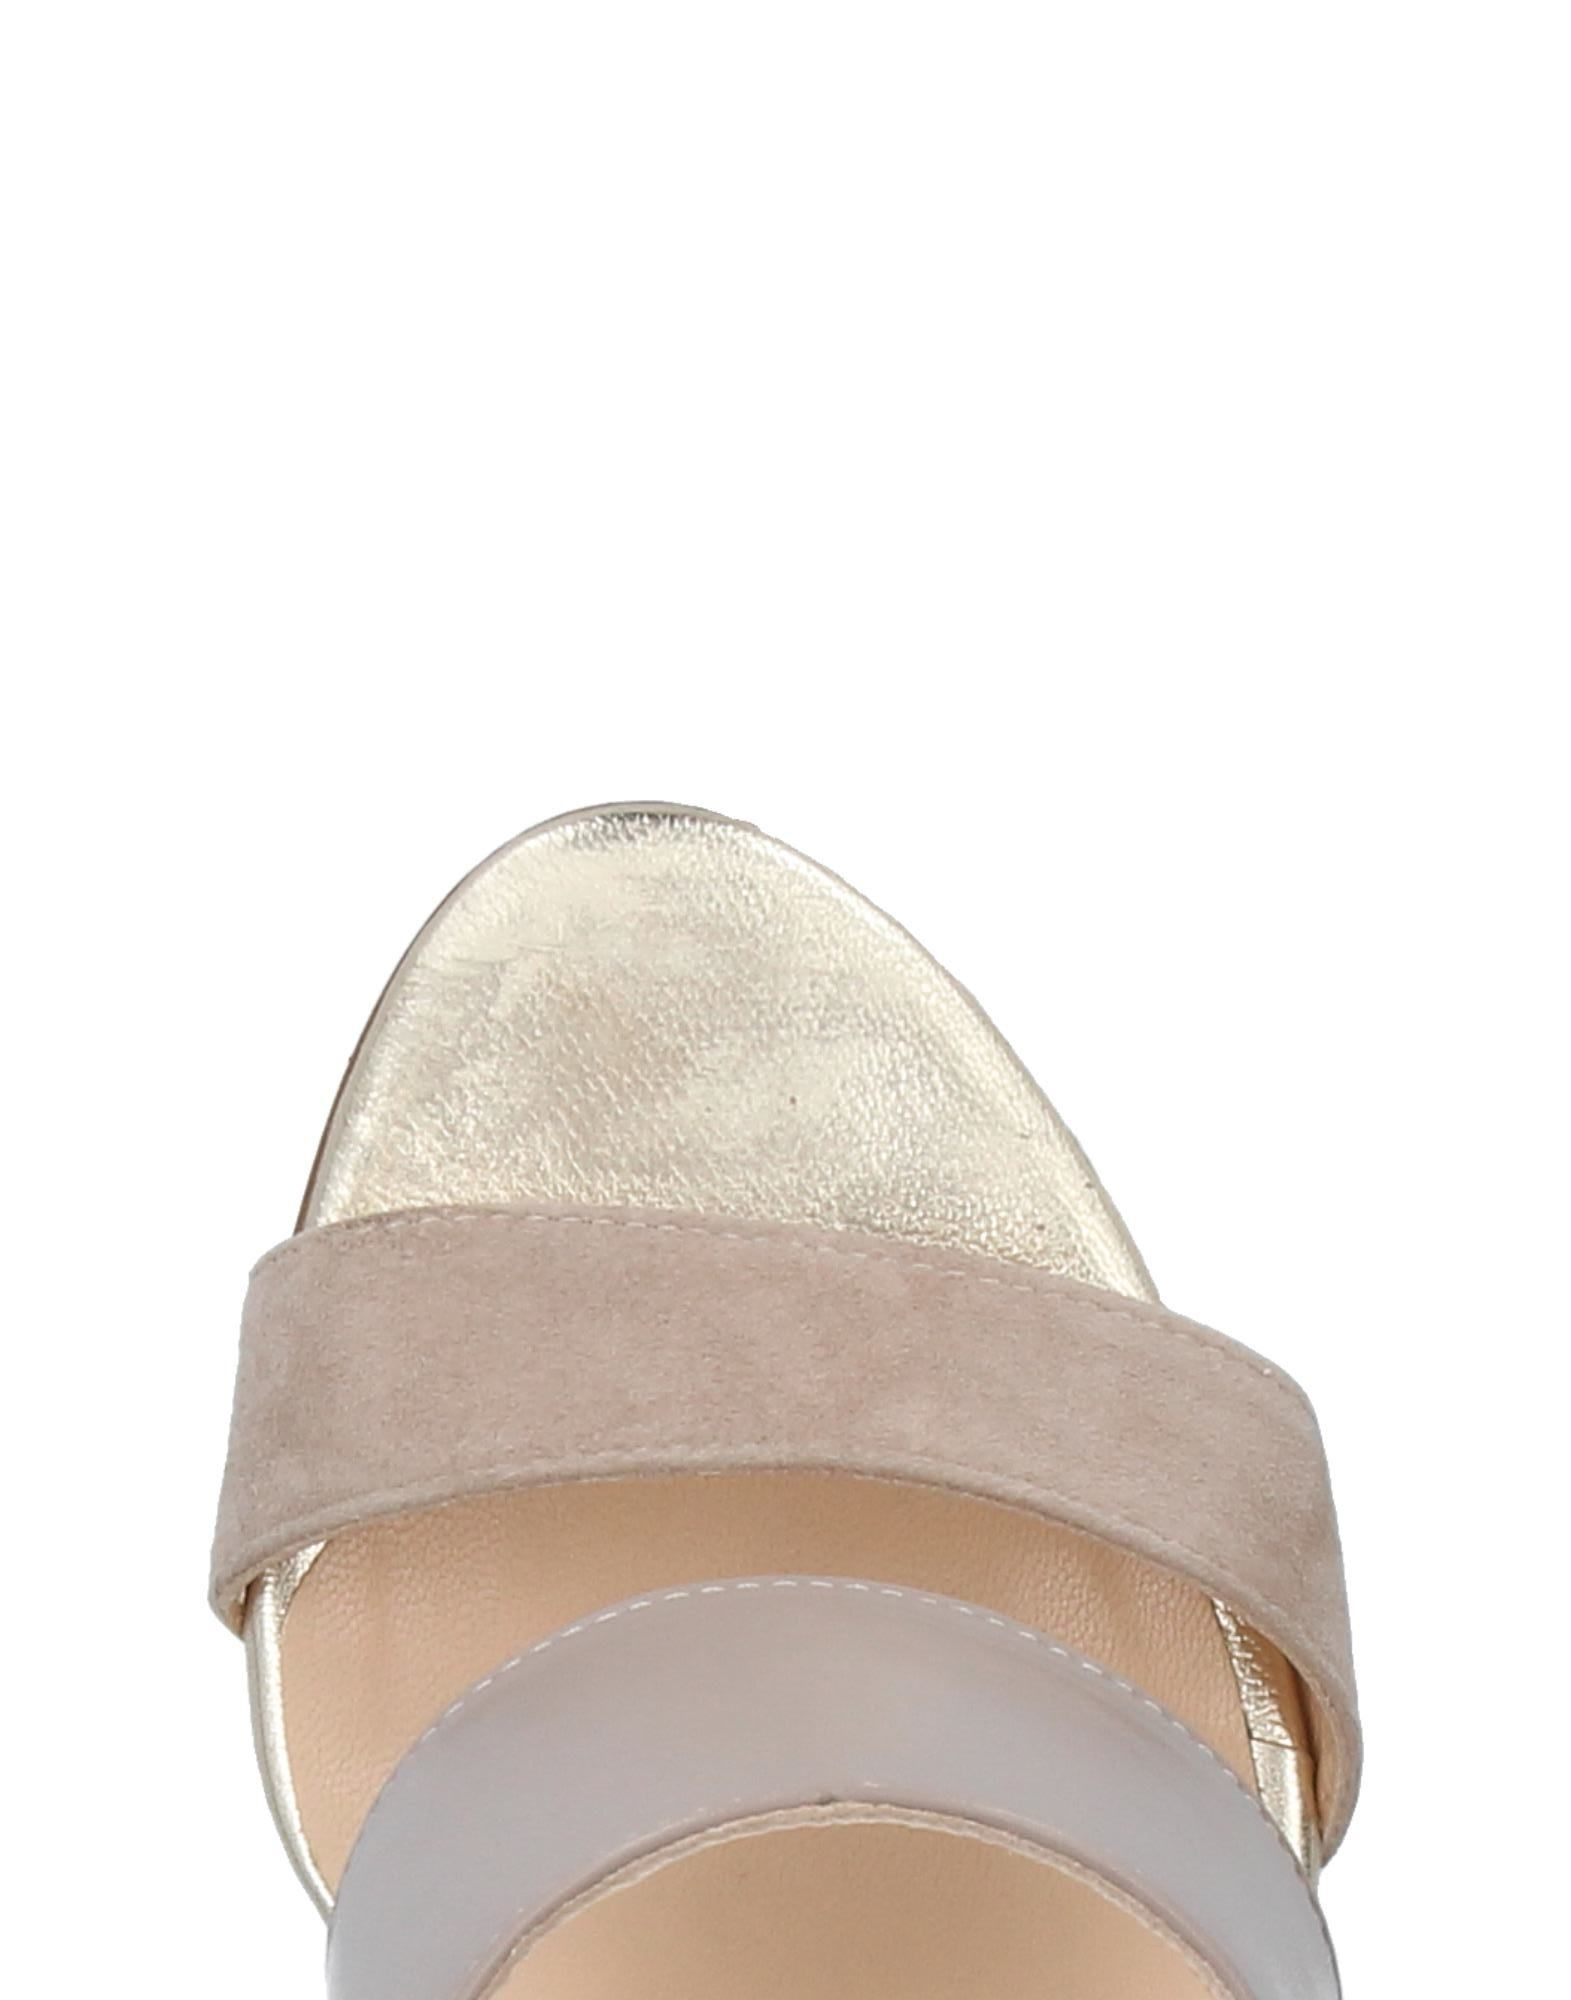 Islo Islo Islo Isabella Lorusso Sandals - Women Islo Isabella Lorusso Sandals online on  United Kingdom - 11359998UI c8b468